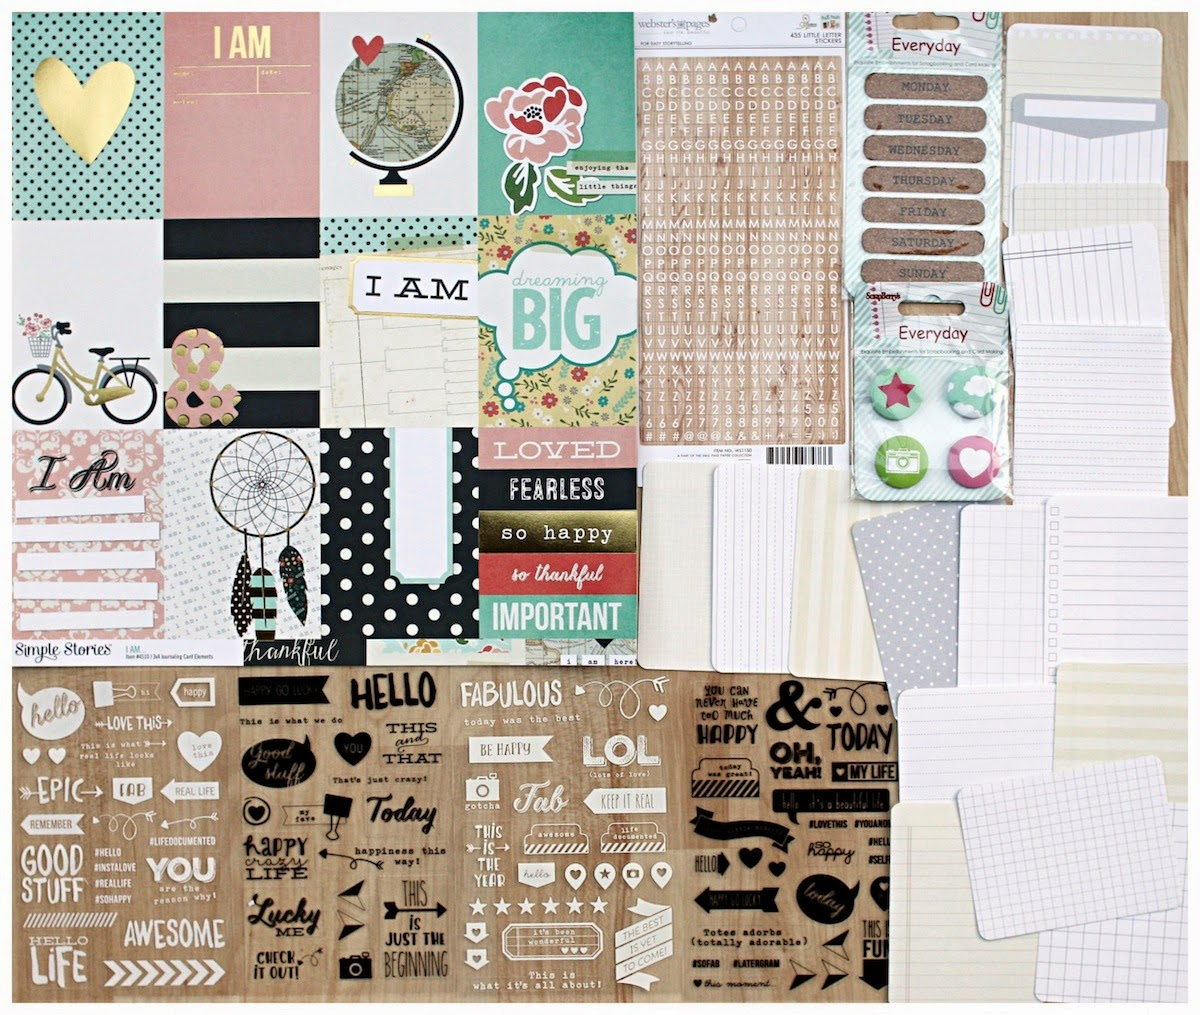 http://www.danipeuss.de/scrapbooking/396-danipeuss-kits/55-monatliche-kits/46605-project-life-a-planner-kit--add-on-april-2015